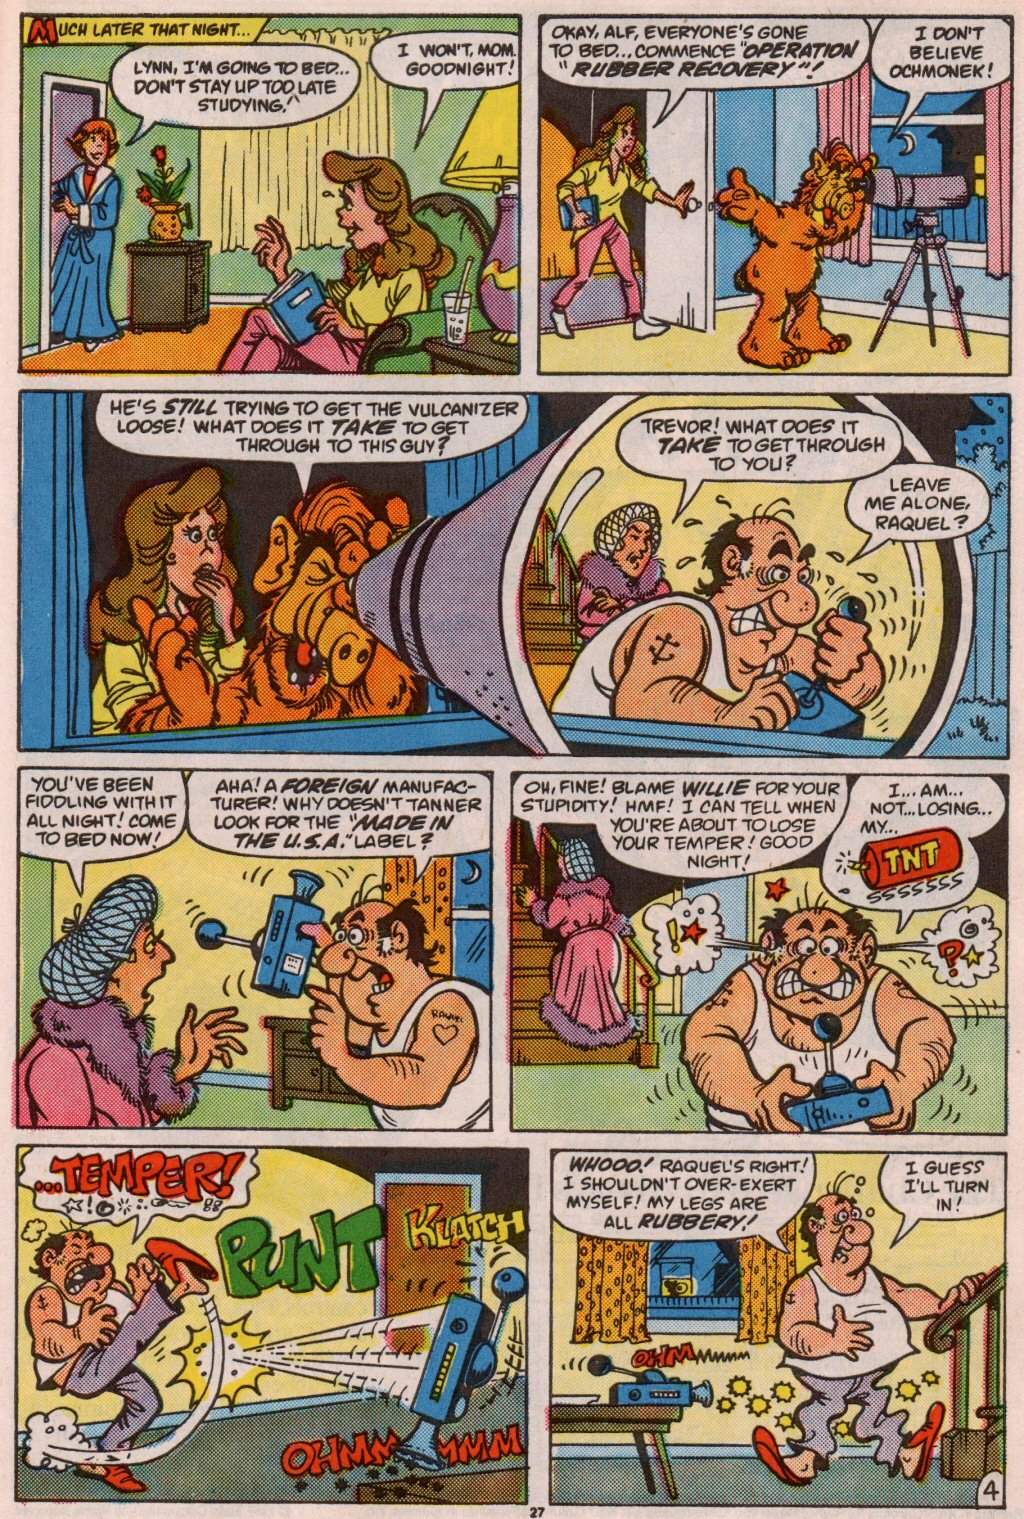 Read online ALF comic -  Issue #7 - 22